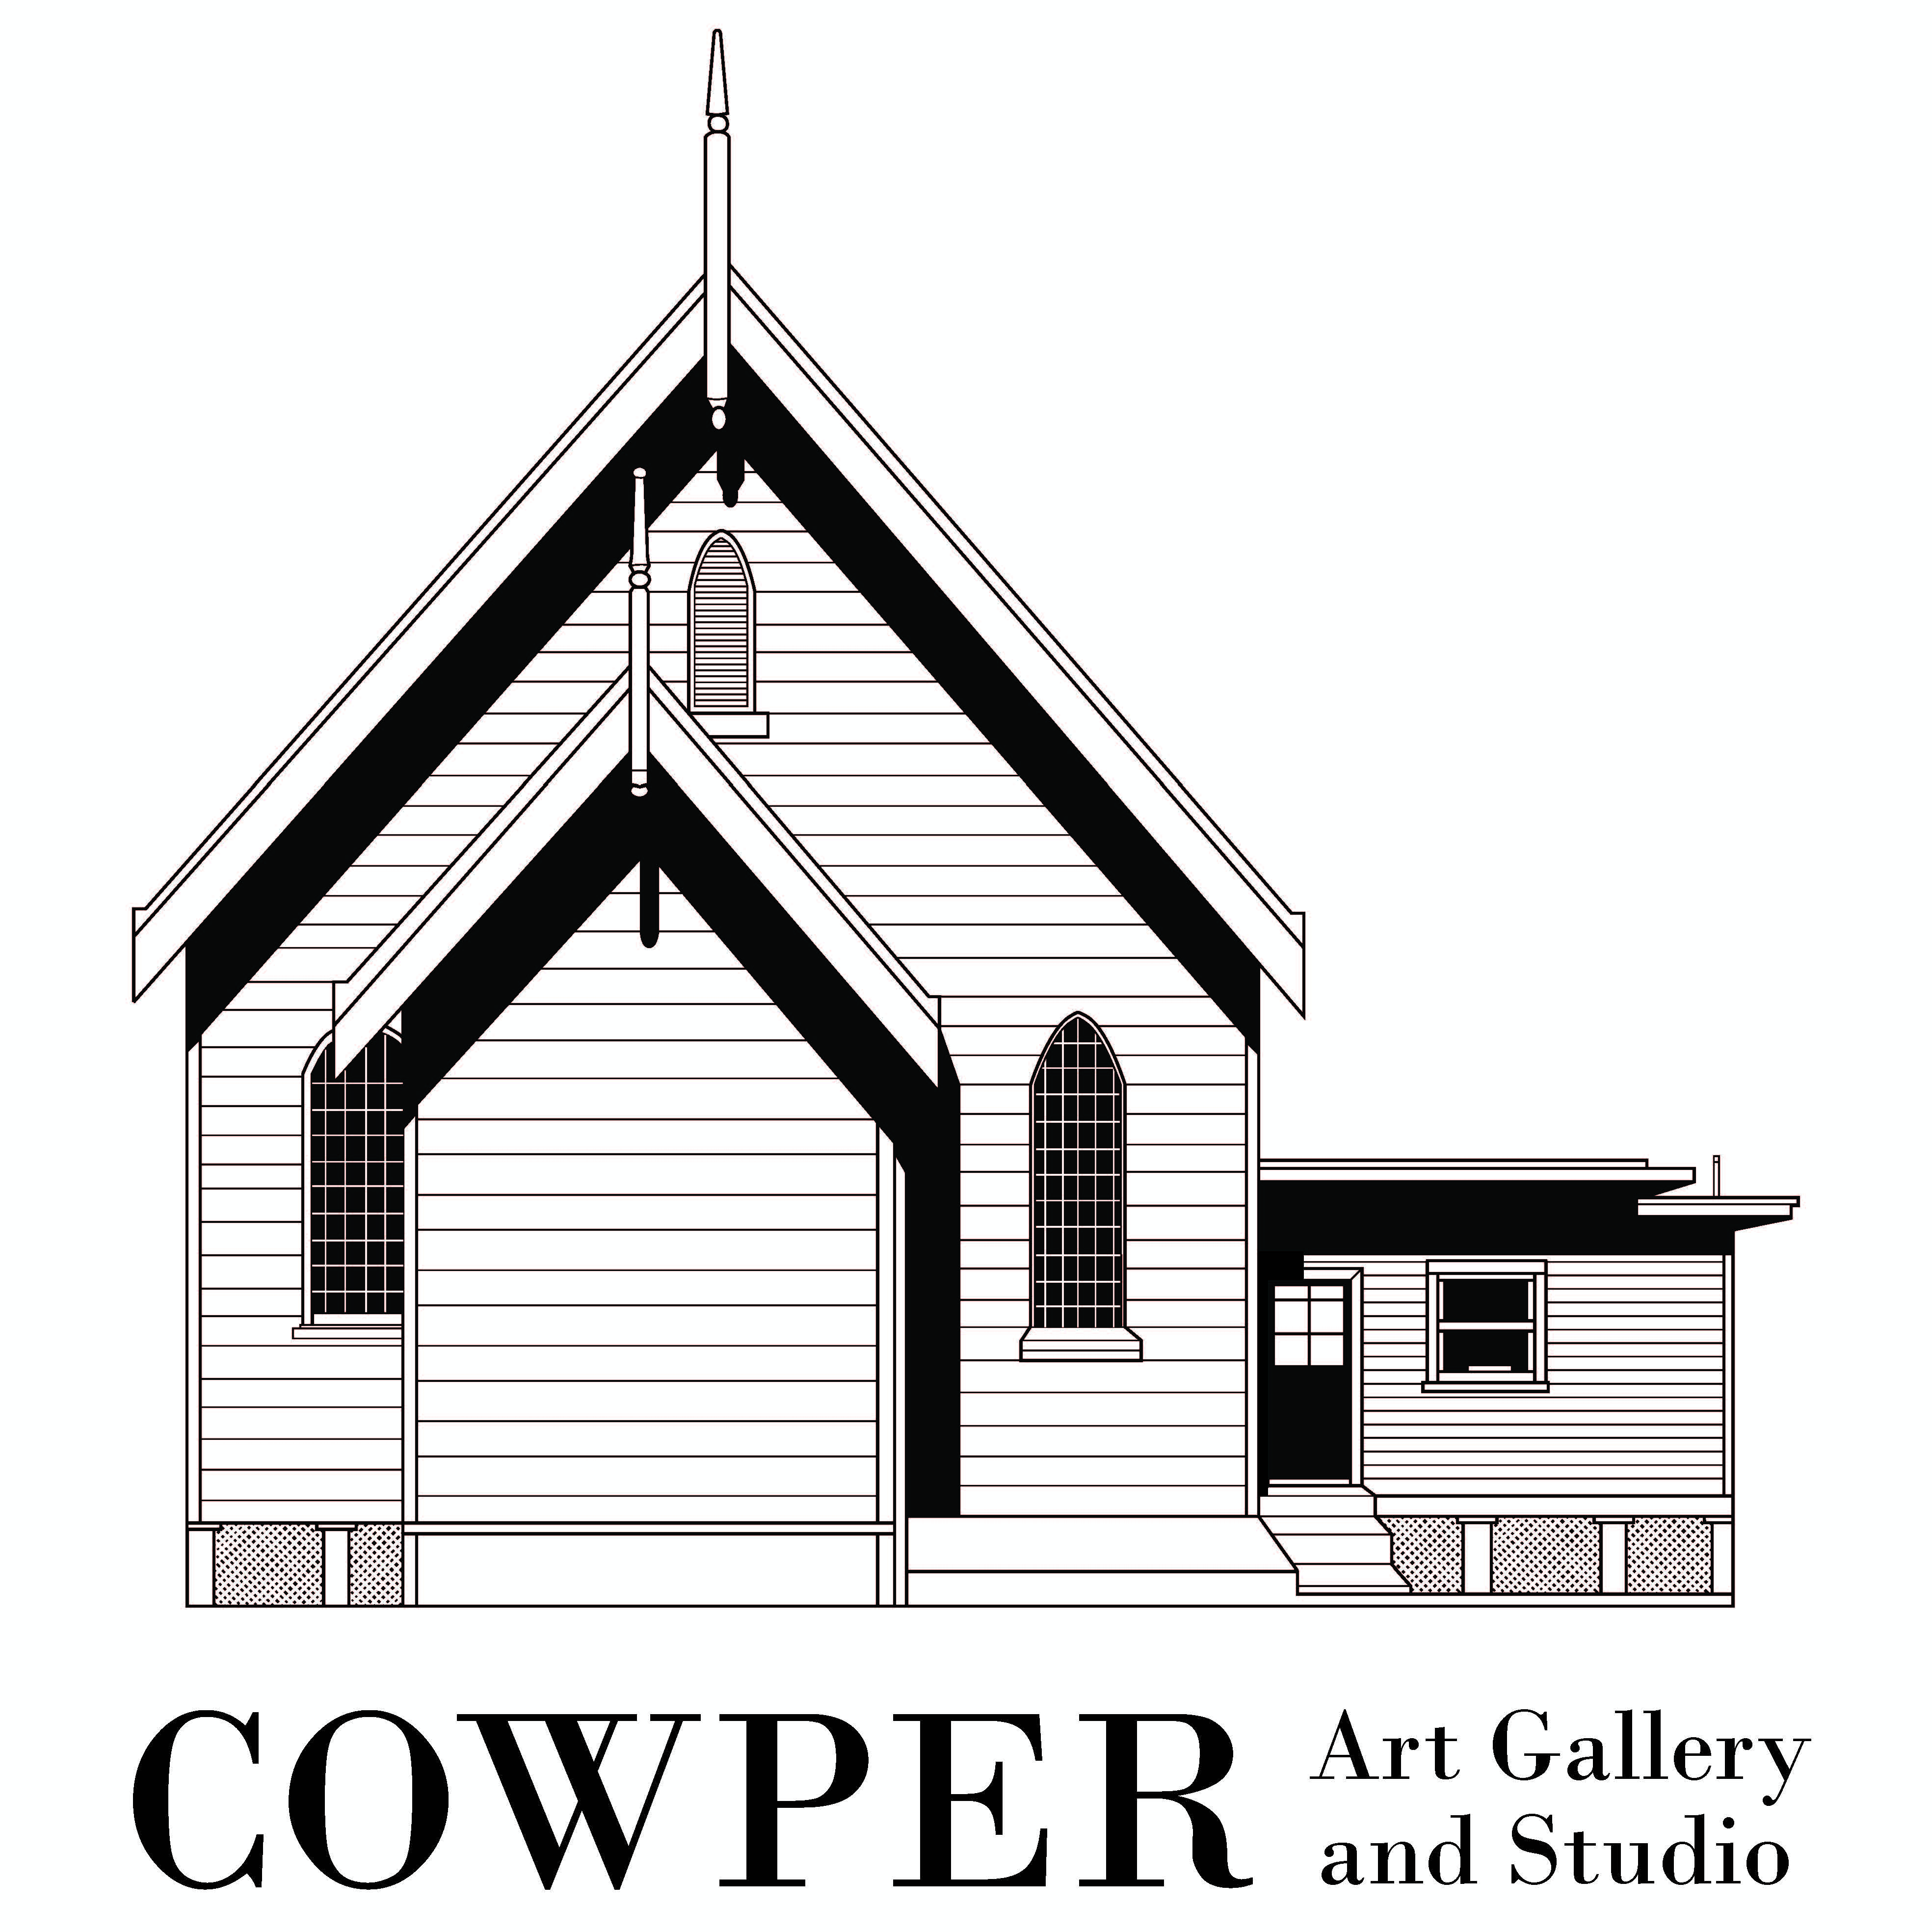 Cowper Art Gallery and Studio